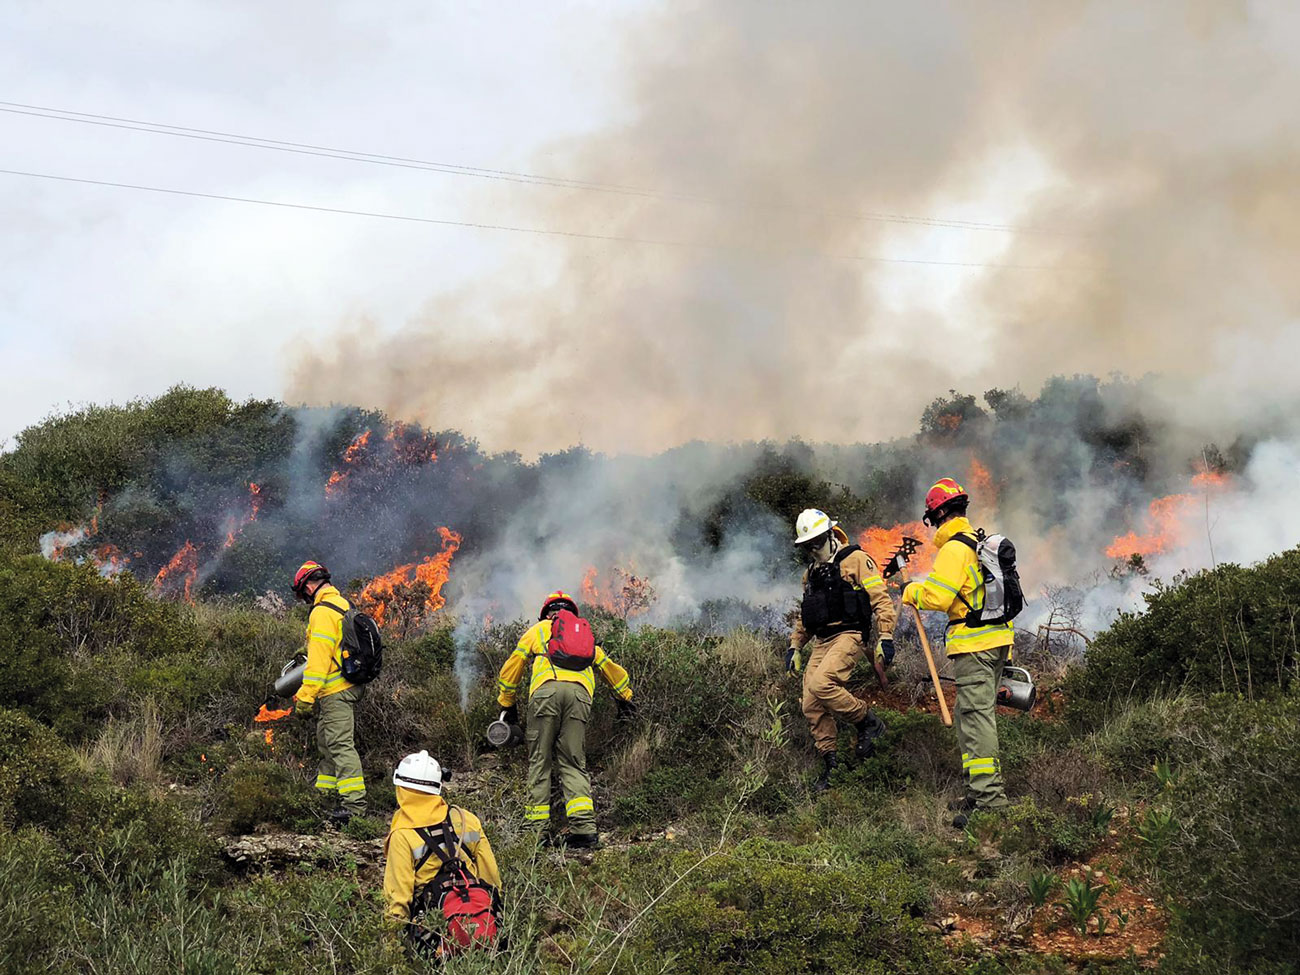 The wildfire burn team using fire and hand tools to construct control lines to stop fire spread.